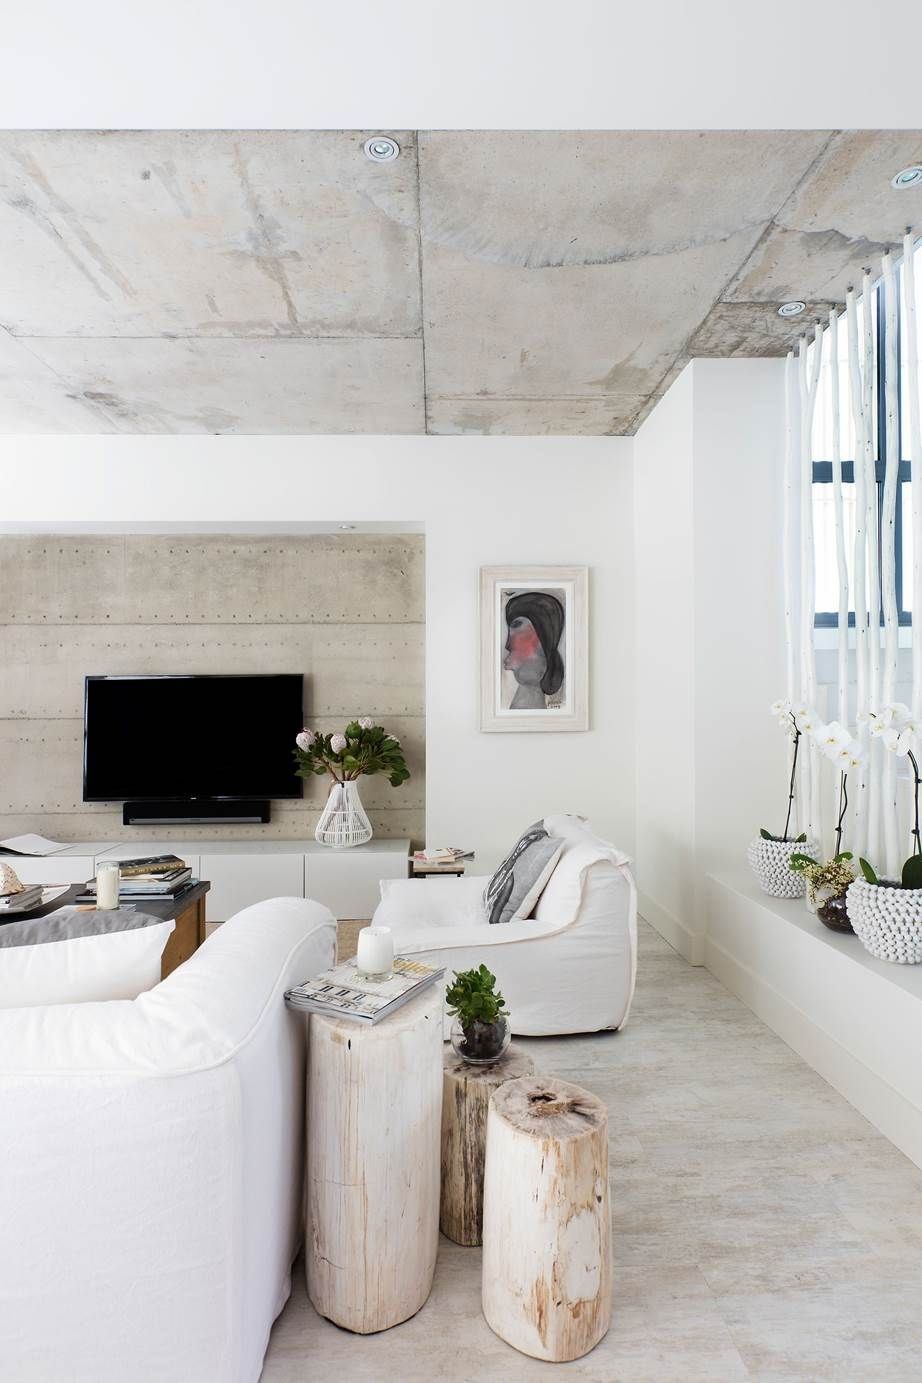 H&g Top 50 Rooms 2016: Living Rooms | Living Rooms, Room And House regarding House And Garden Interior Design Competition